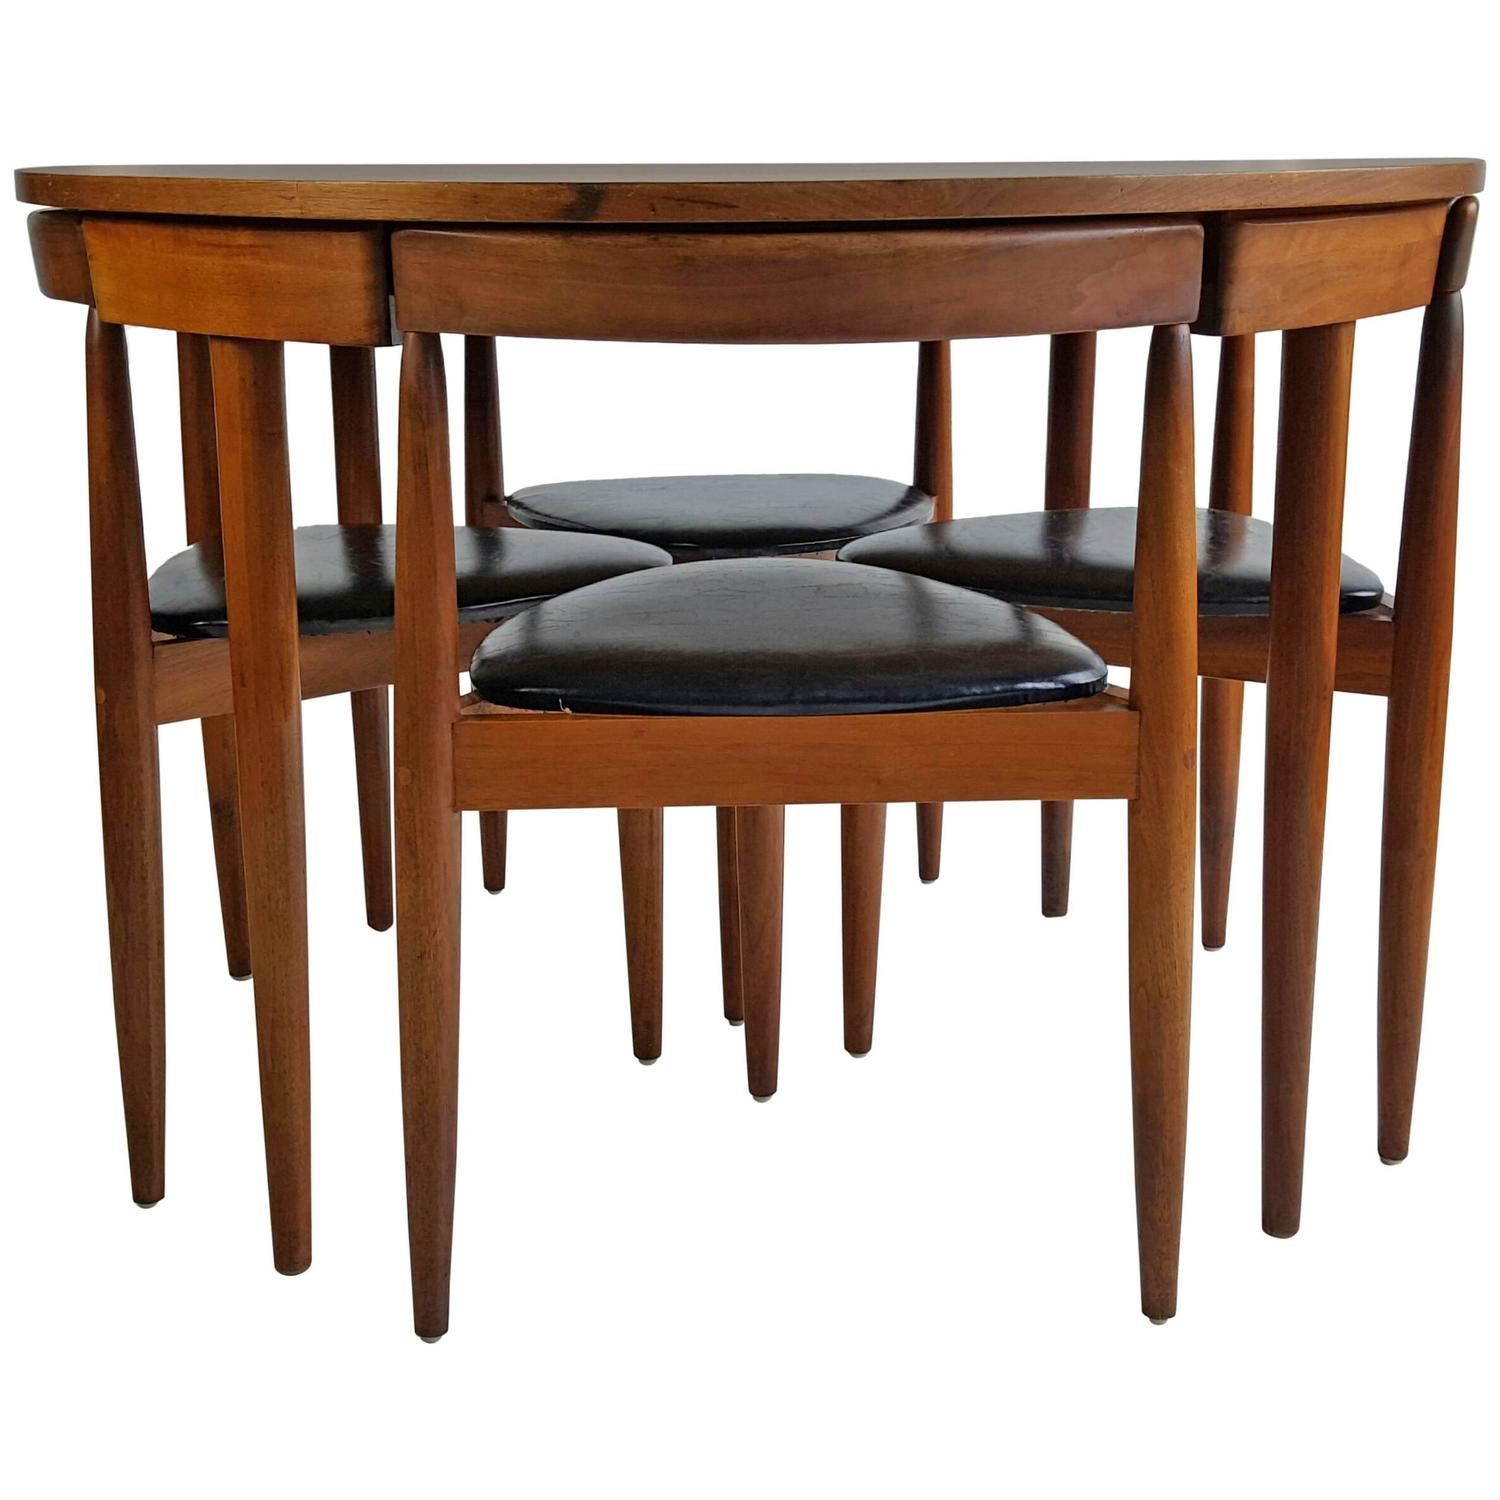 Mid century modern dining table four chairs hans olsen for Mid century modern dining table